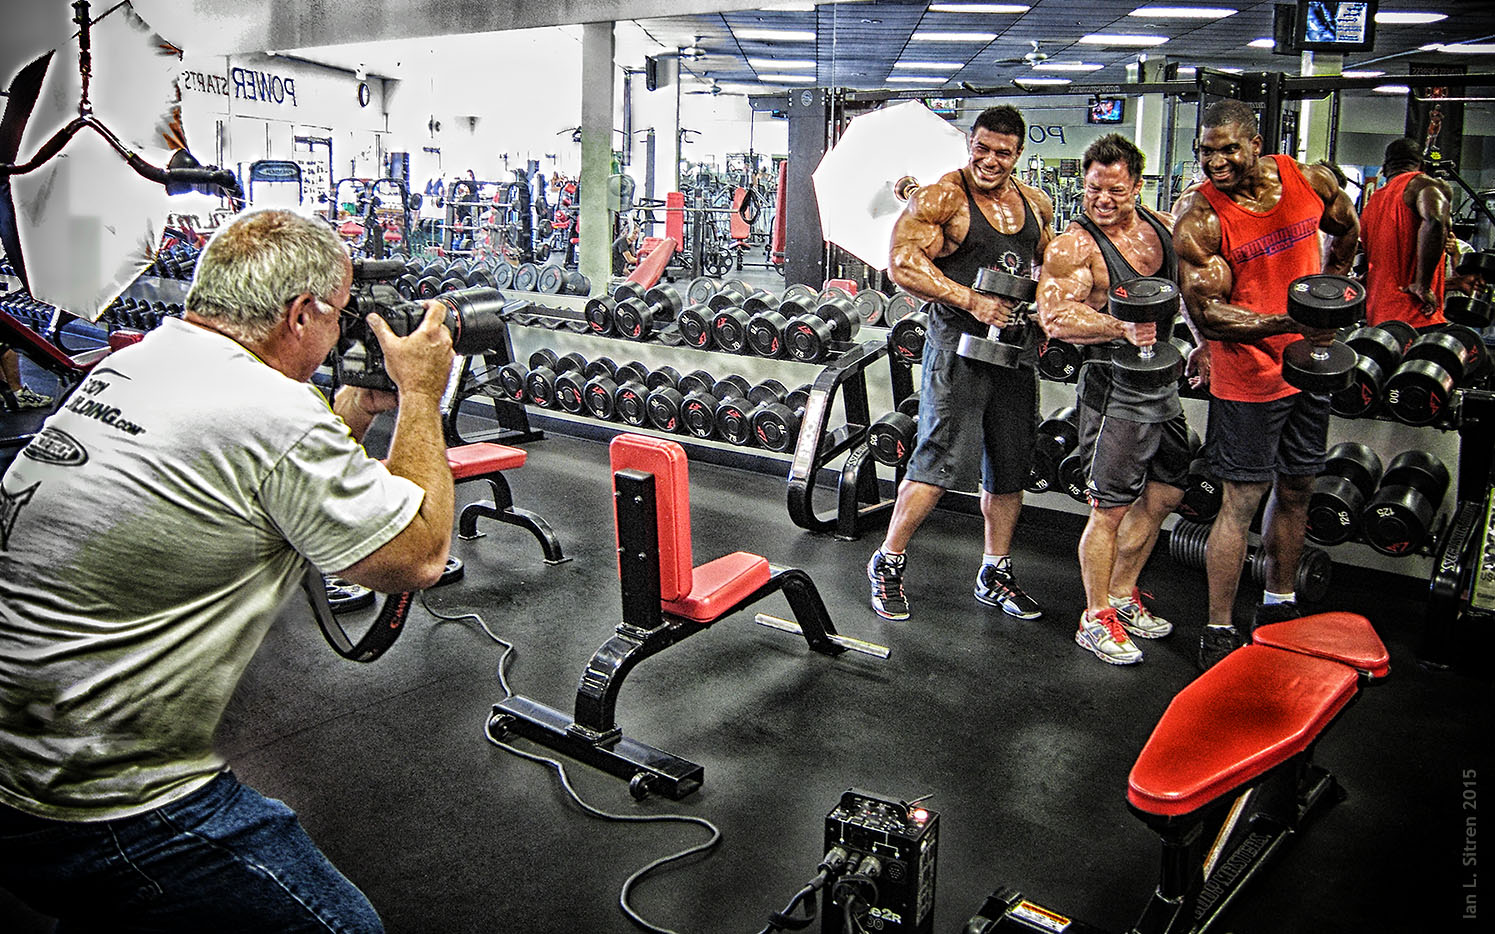 Bodybuilders Xavisus Gayden, Grant Pieterse and Jake Sawyer working out during our photo shoot in the gym